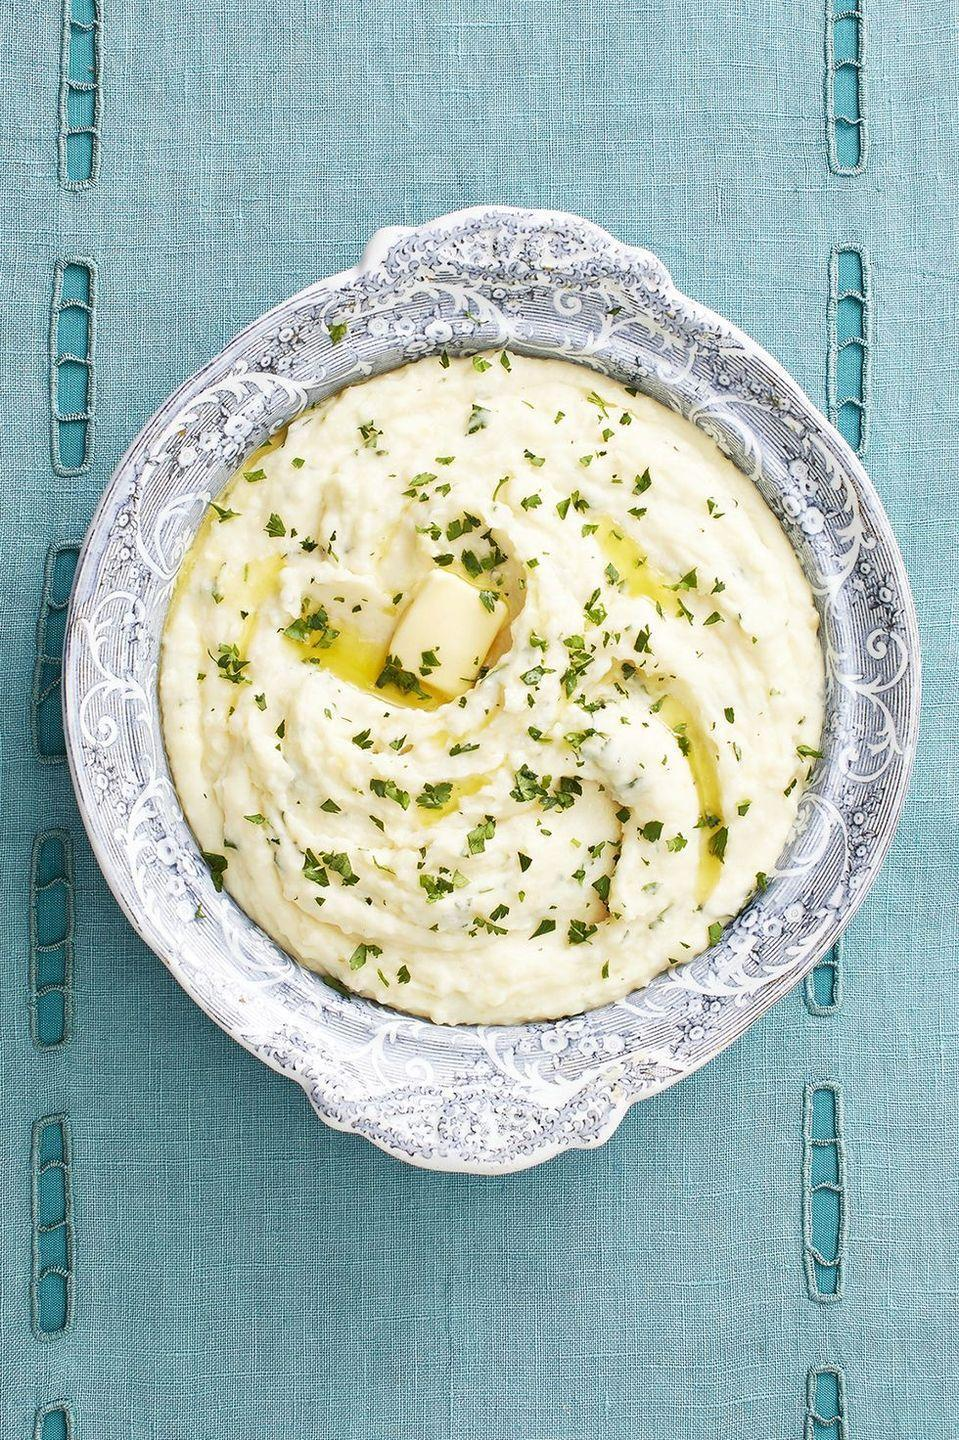 """<p>It takes a little extra time to roast the garlic for these creamy mashed potatoes—but it's so worth it! </p><p><a href=""""https://www.thepioneerwoman.com/food-cooking/recipes/a33314207/roasted-garlic-mashed-potatoes-recipe/"""" rel=""""nofollow noopener"""" target=""""_blank"""" data-ylk=""""slk:Get Ree's recipe."""" class=""""link rapid-noclick-resp""""><strong>Get Ree's recipe.</strong></a></p>"""